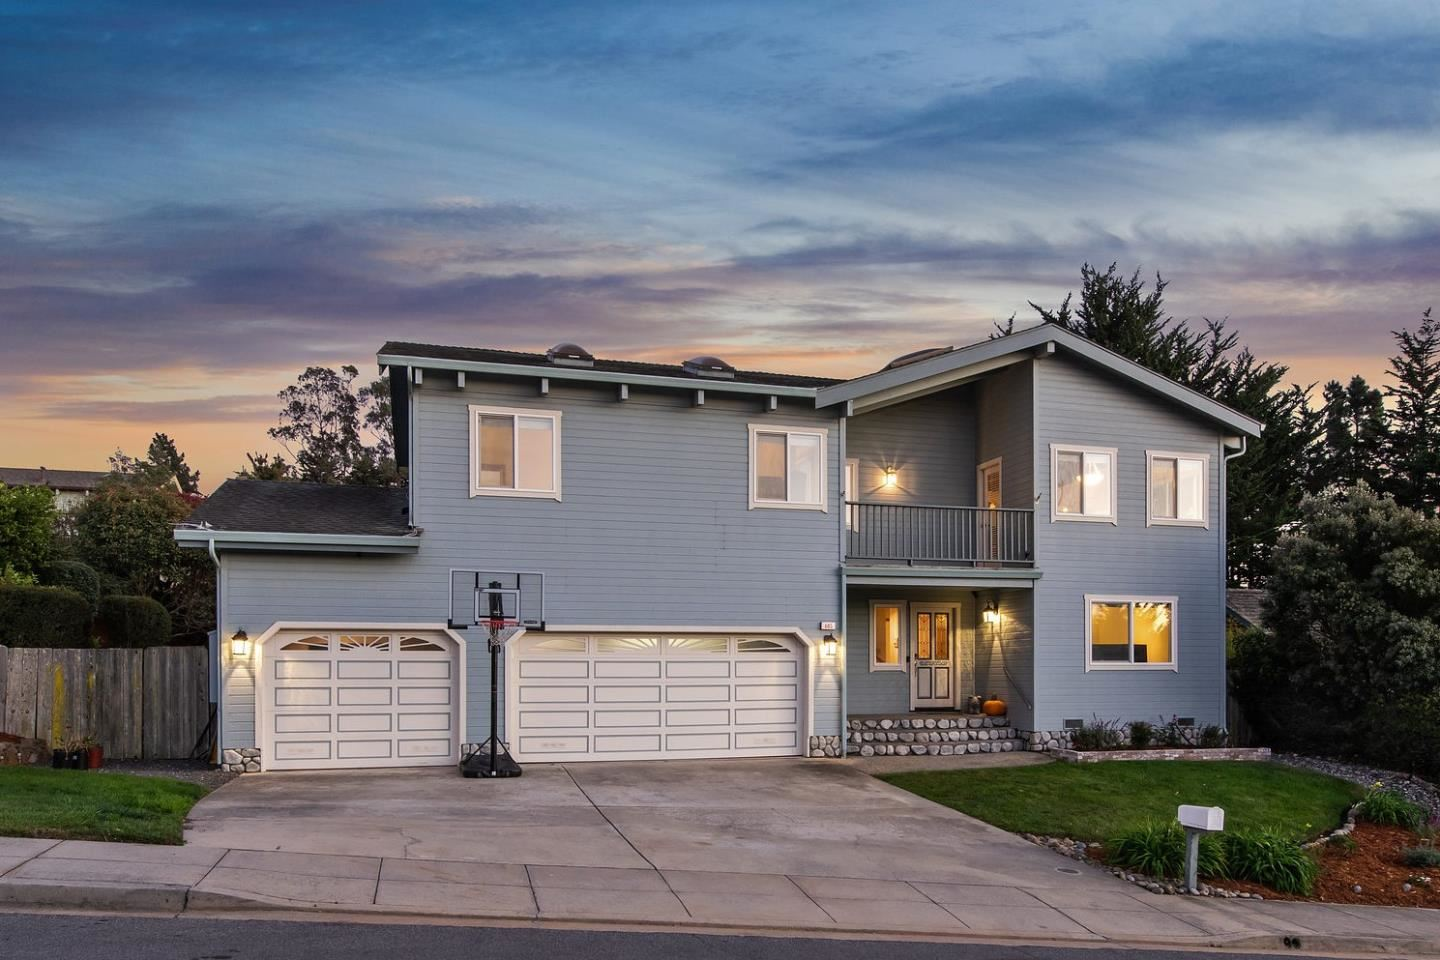 Photo for 665 Silver AVE, HALF MOON BAY, CA 94019 (MLS # ML81818147)